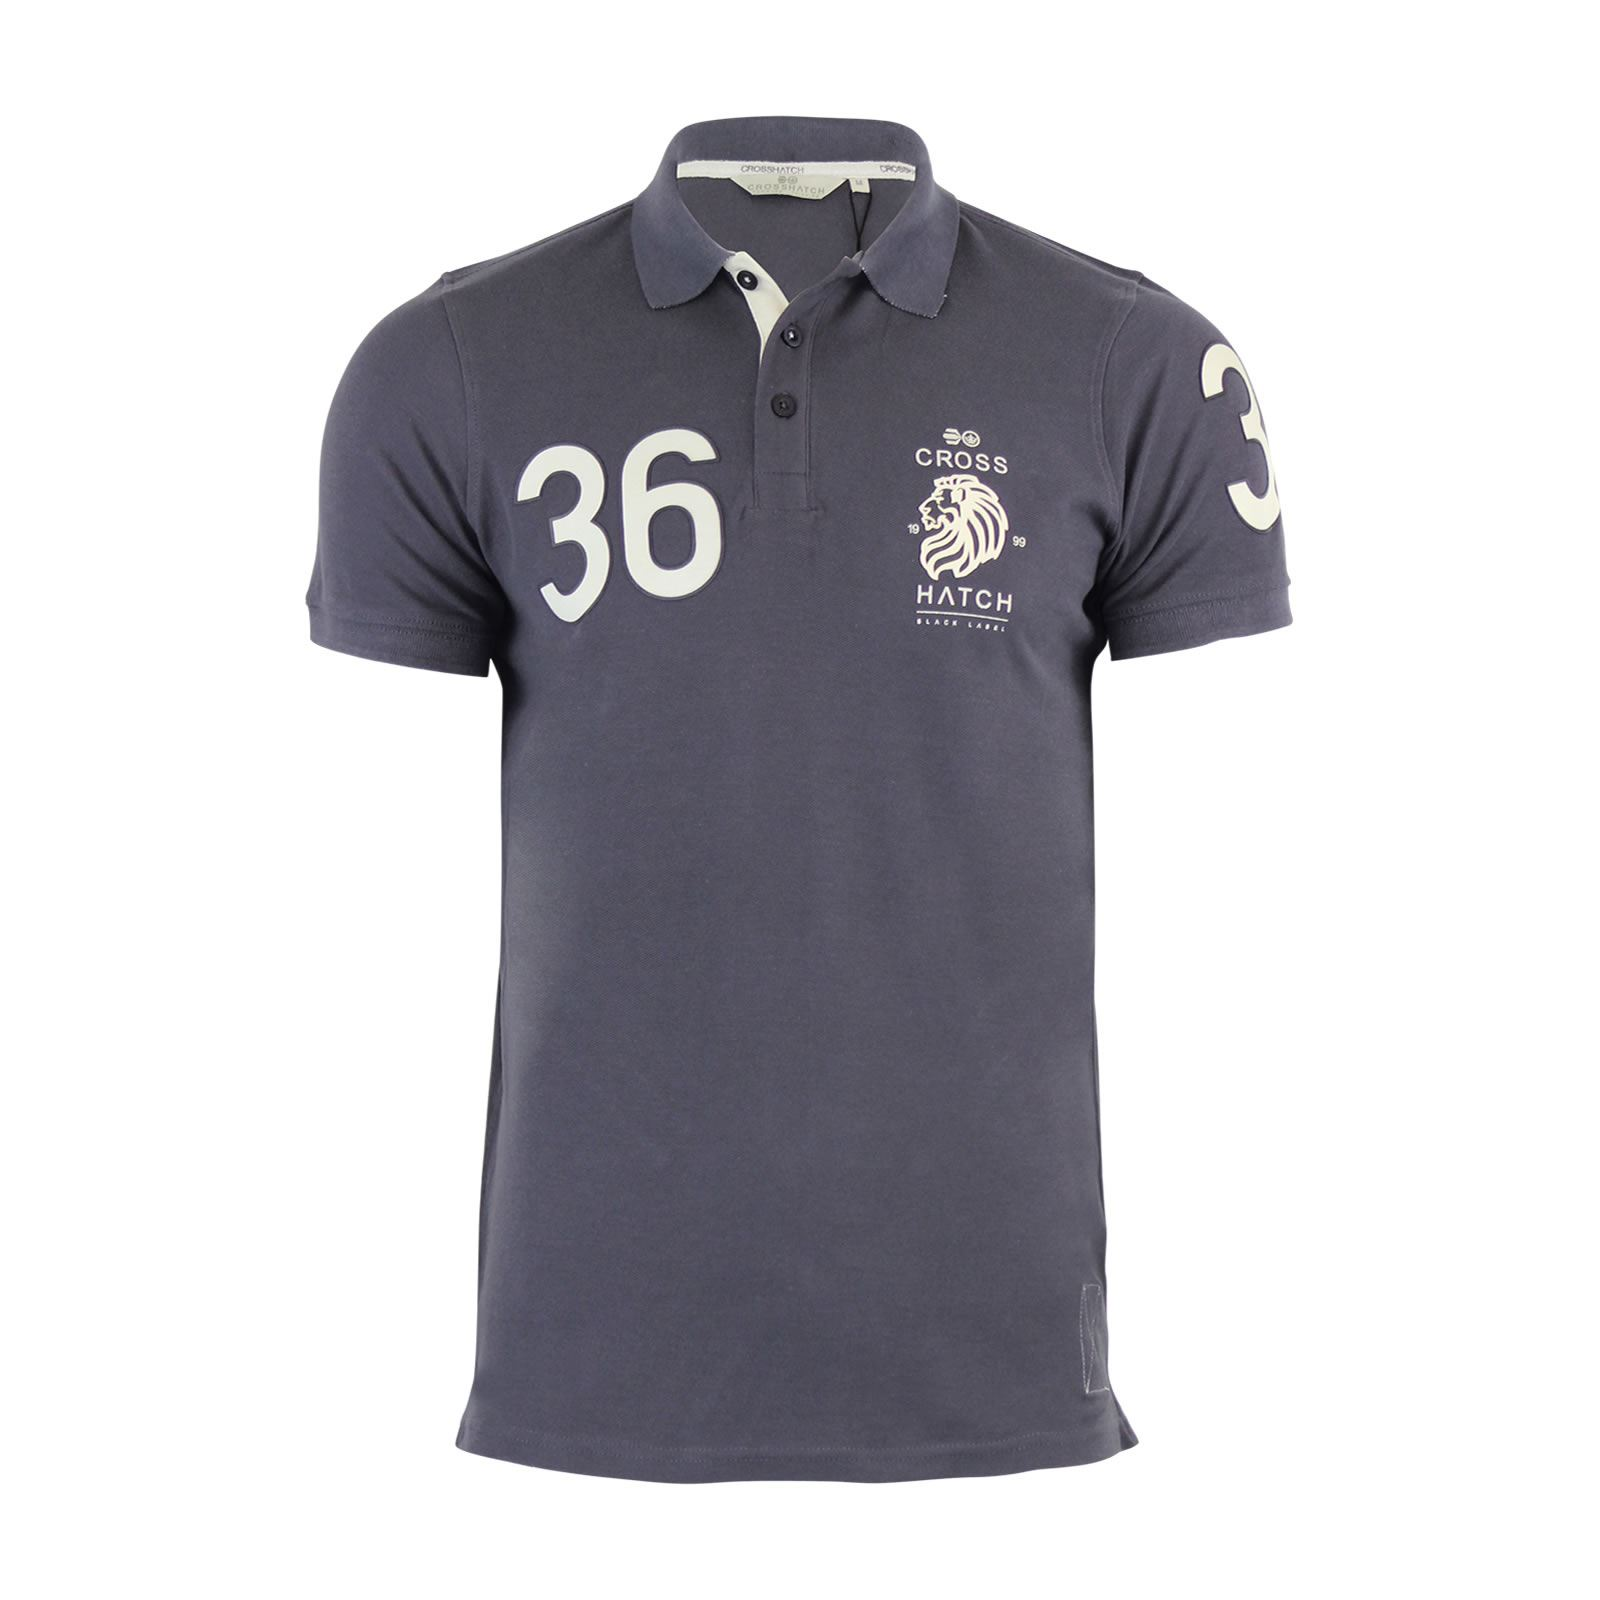 Crosshatch-Mens-Polo-T-Shirt-Pique-Polo-Cotton-Collared-Short-Sleeve-T-Shirt thumbnail 23